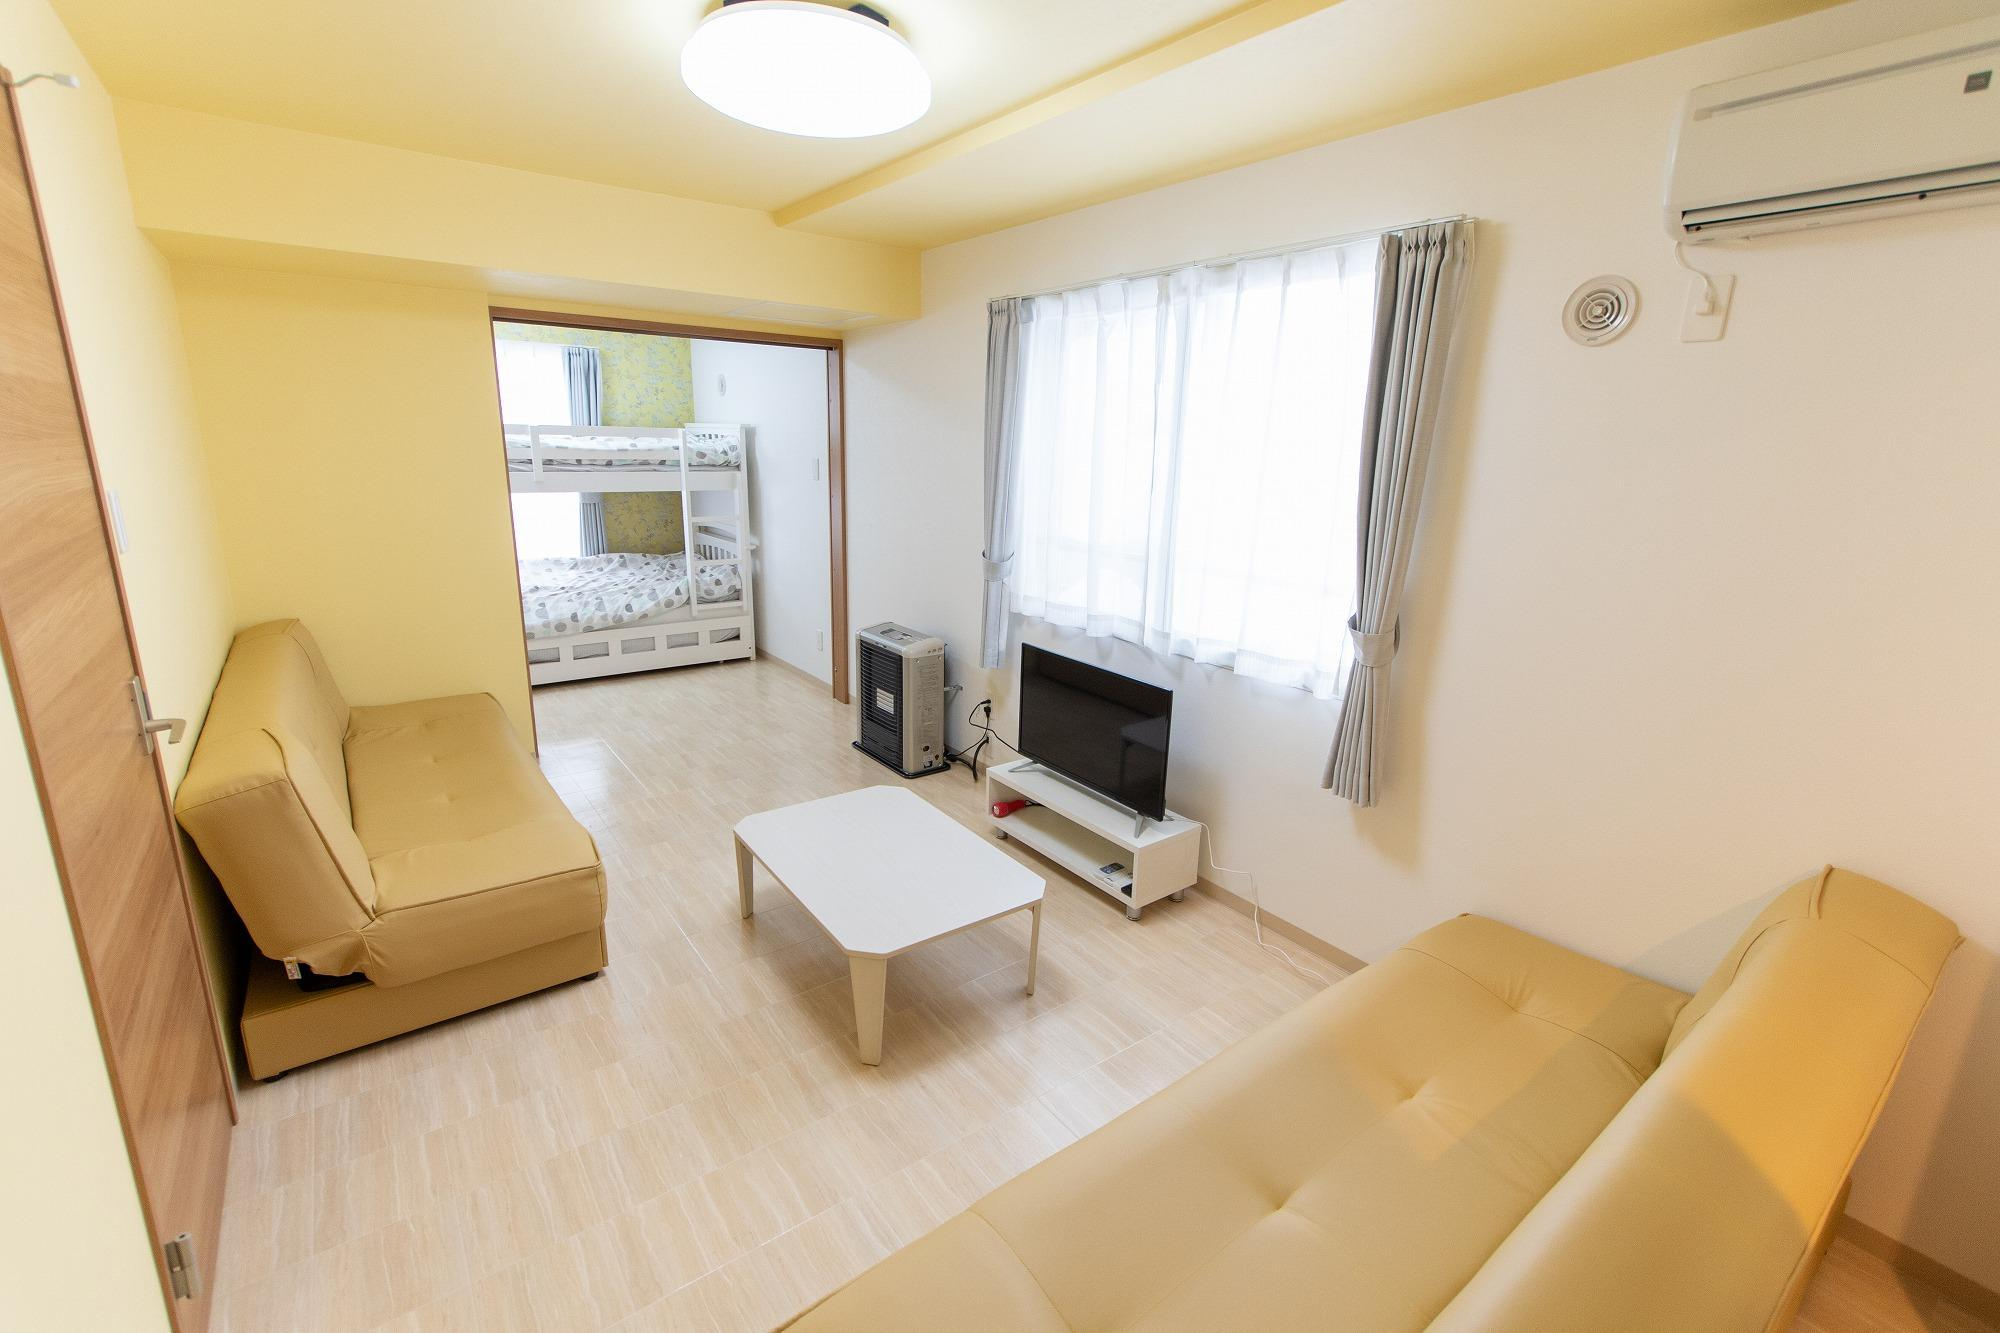 SP05 Susukino Spacious Room For 5people Wifi